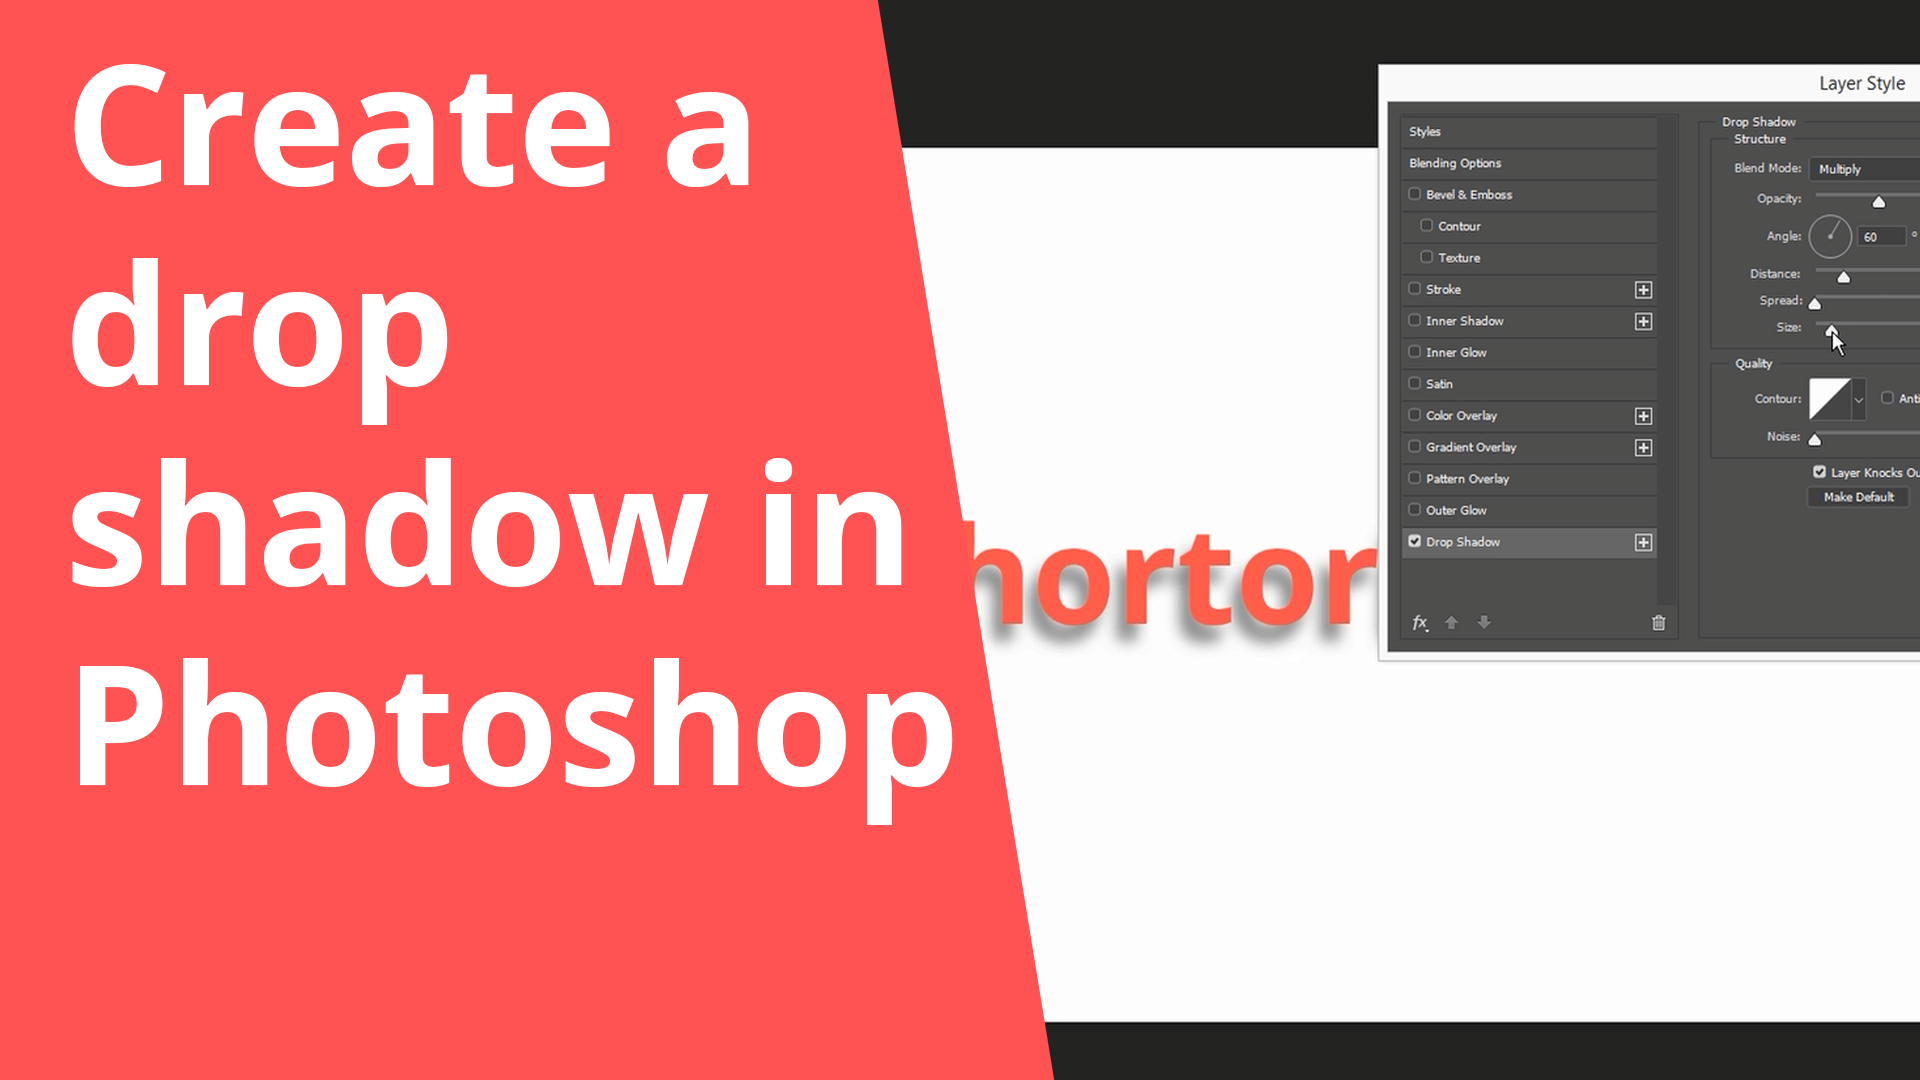 Create a drop shadow in Photoshop